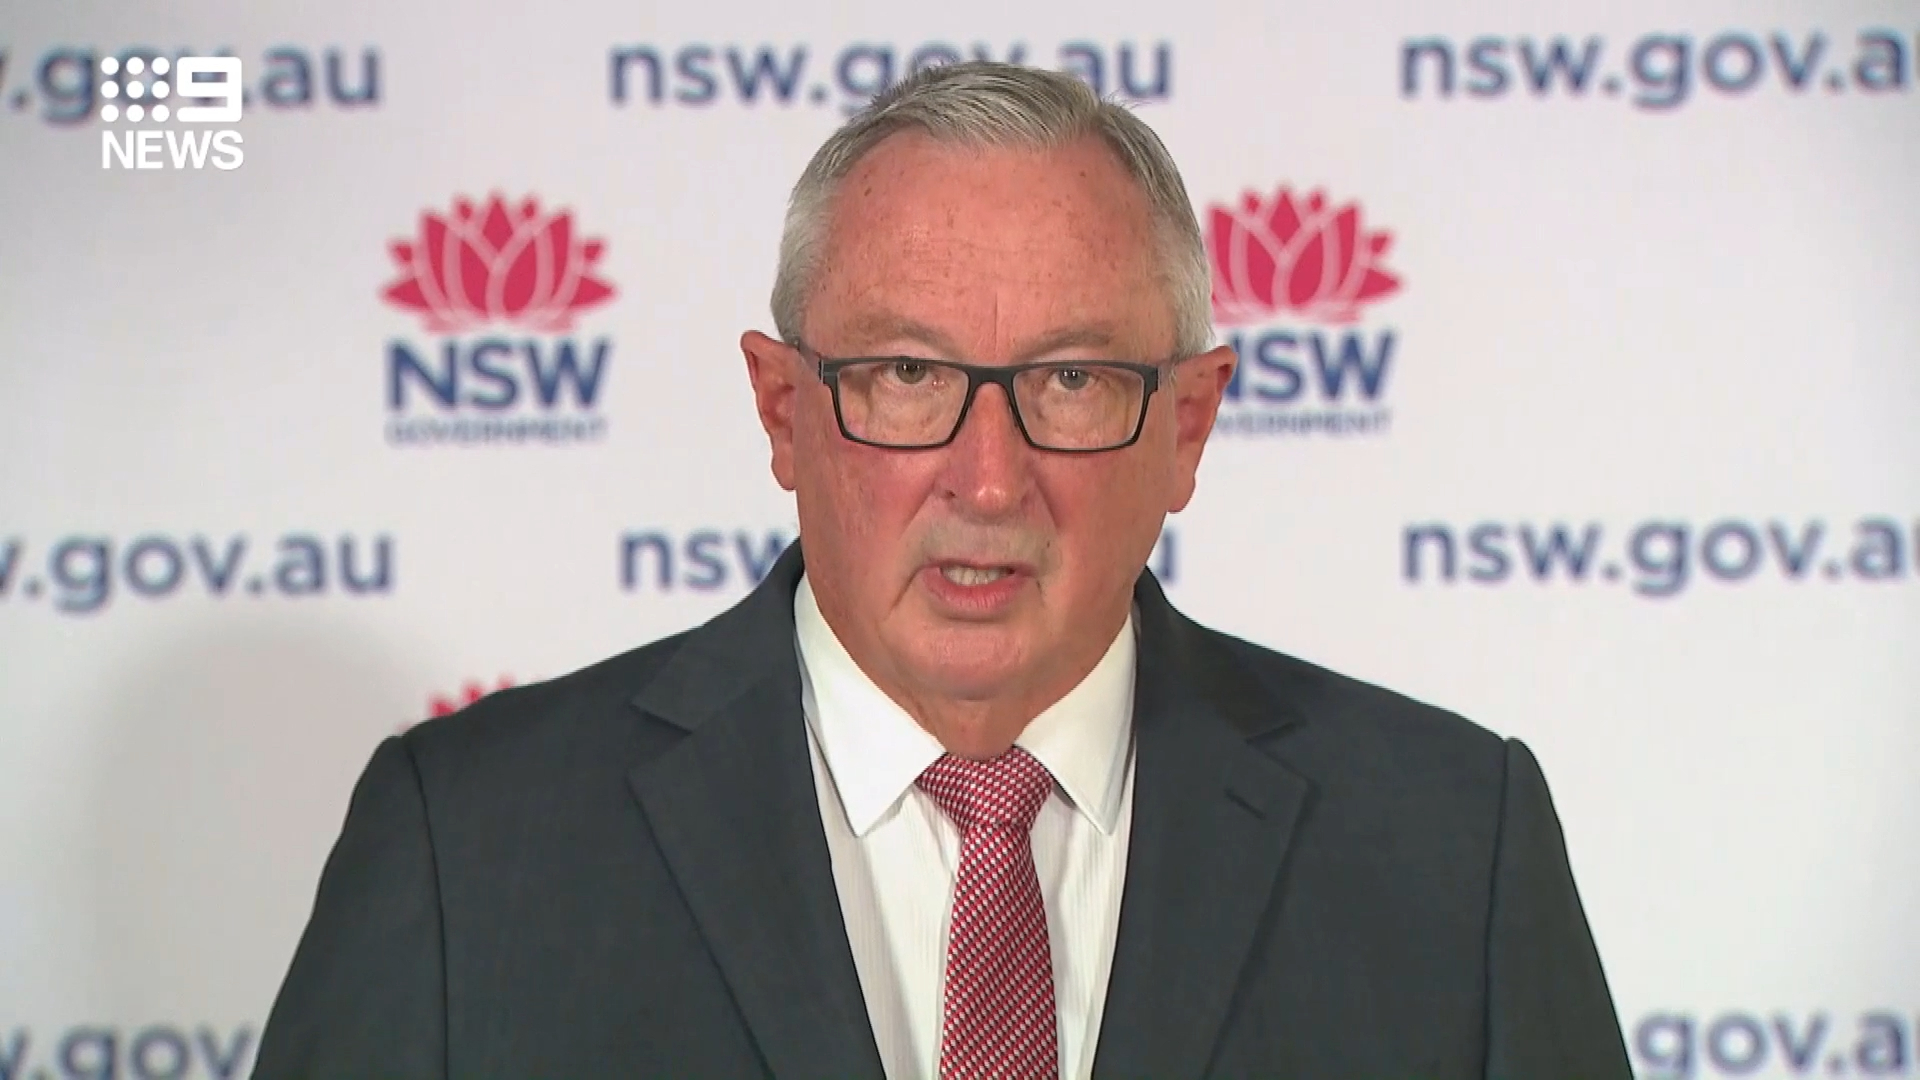 NSW records 863 new local COVID-19 cases and seven deaths